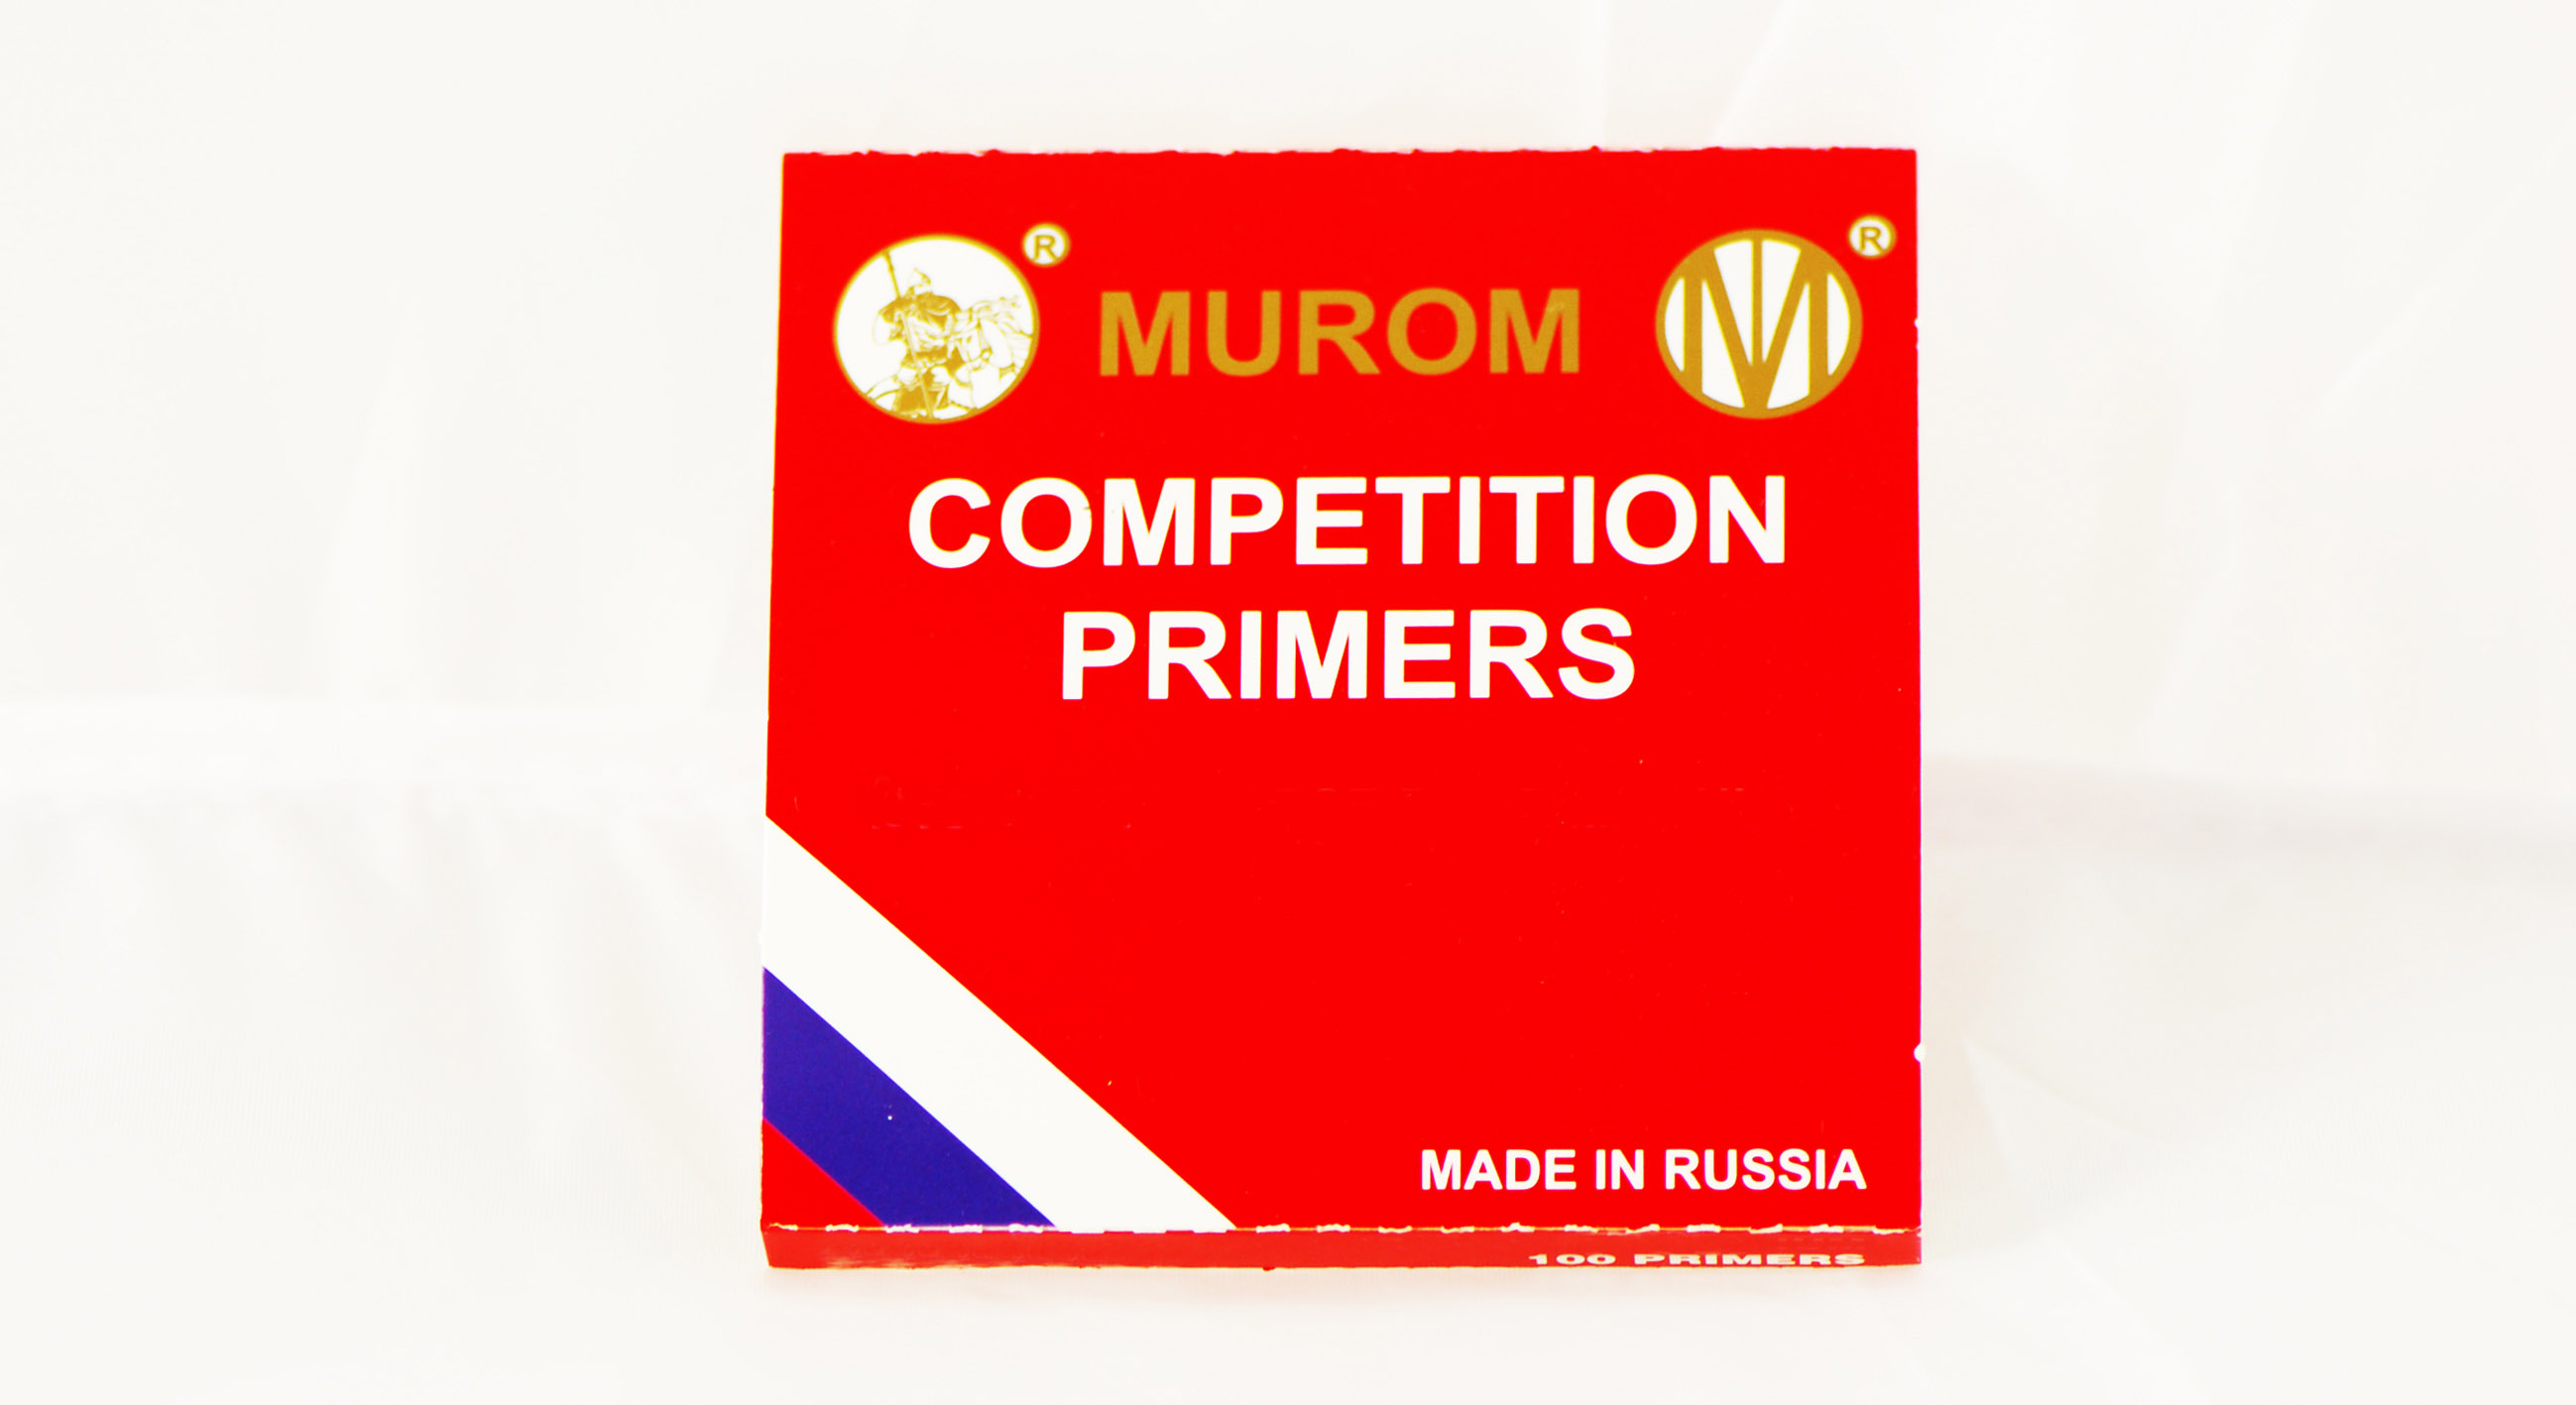 MUROM KVB-9S SMALL PISTOL COMPETITION PRIMERS